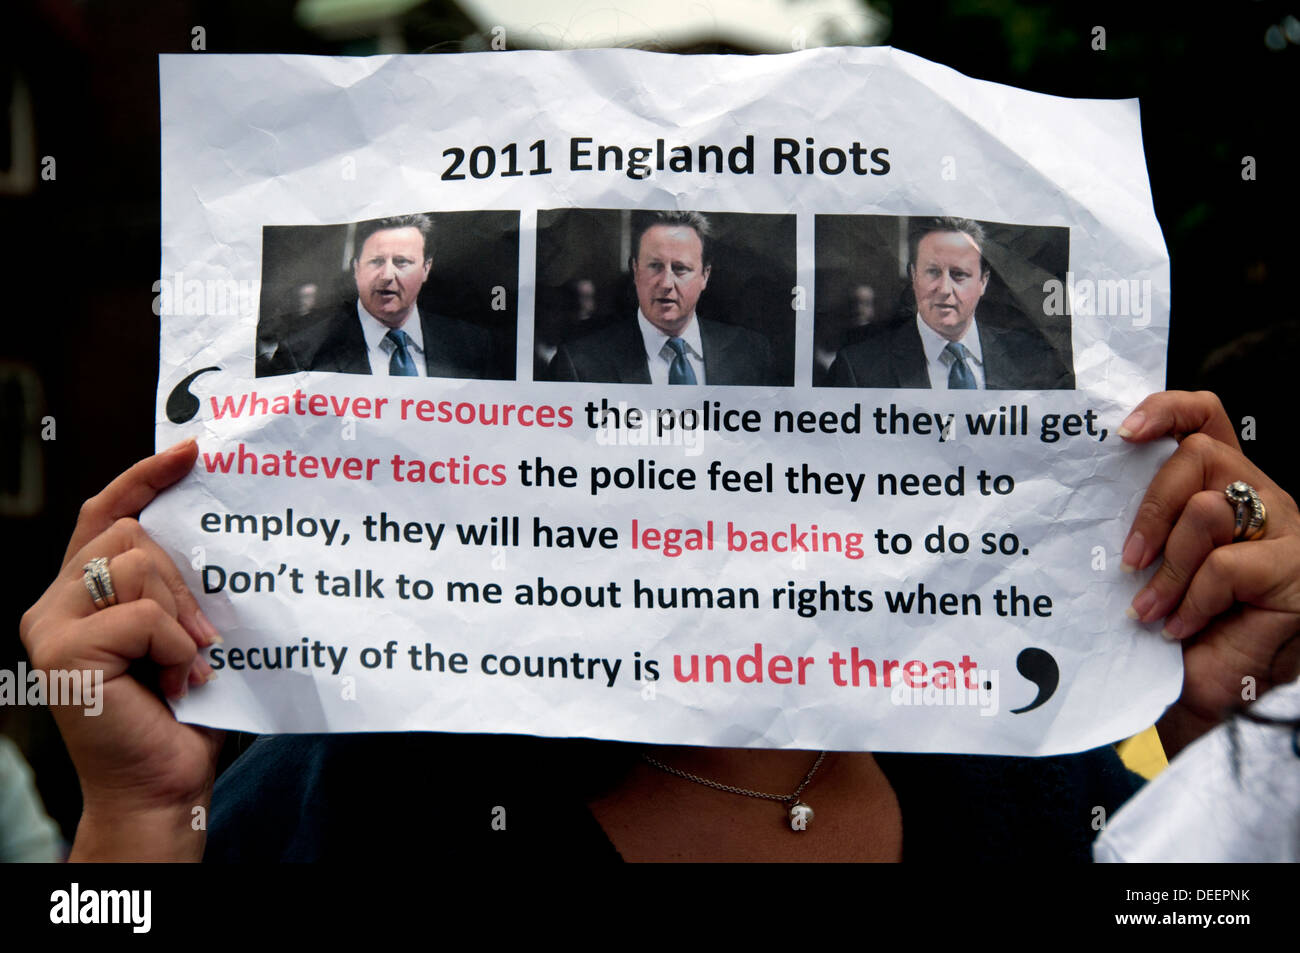 Egyptian Pro-Government Pro-Army  protesters in London August 2013 - Stock Image